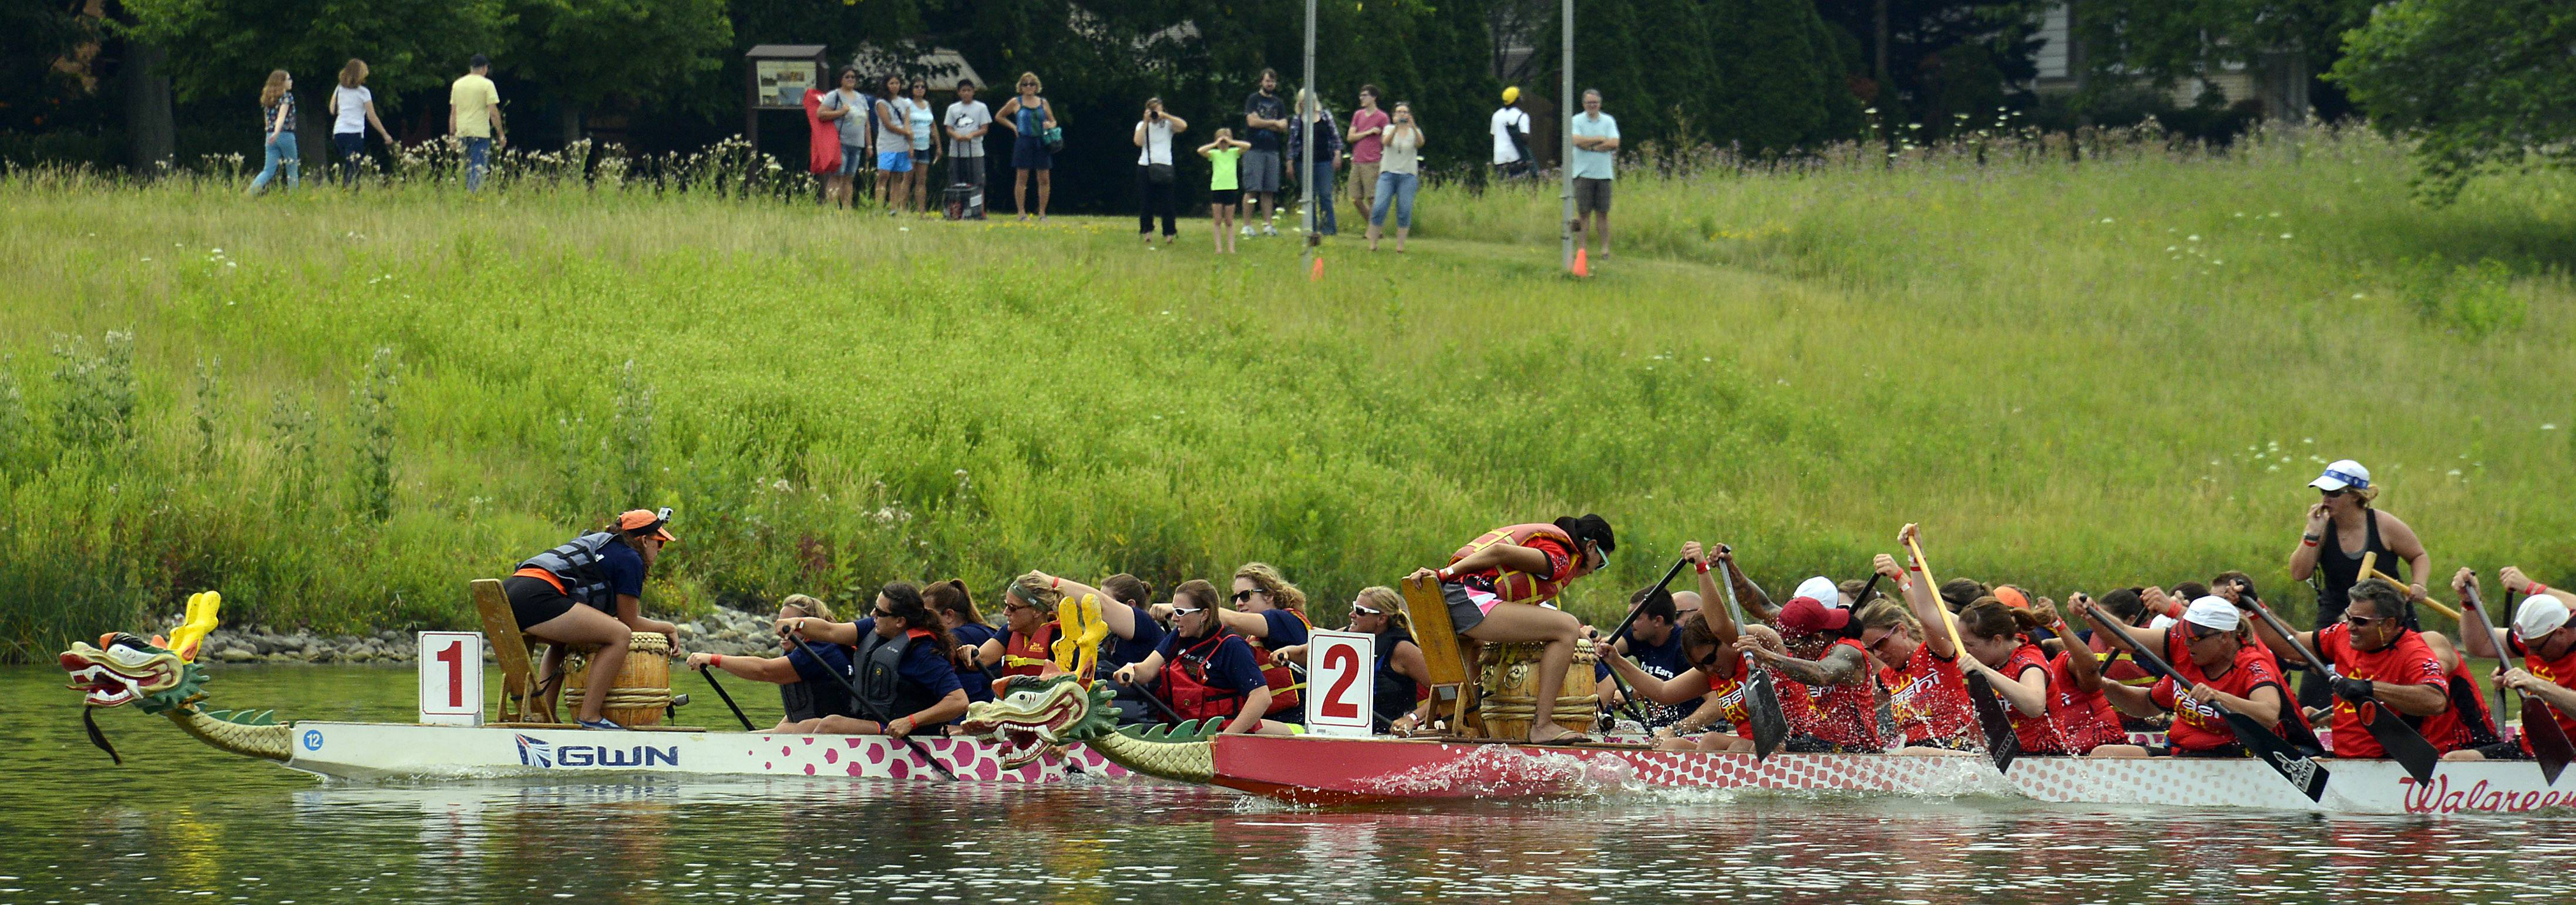 Crowds watch from shore as the dragon boat teams race toward the finish line Saturday at the Walgreens Chicago International Dragon Boat Festival at Lake Arlington.